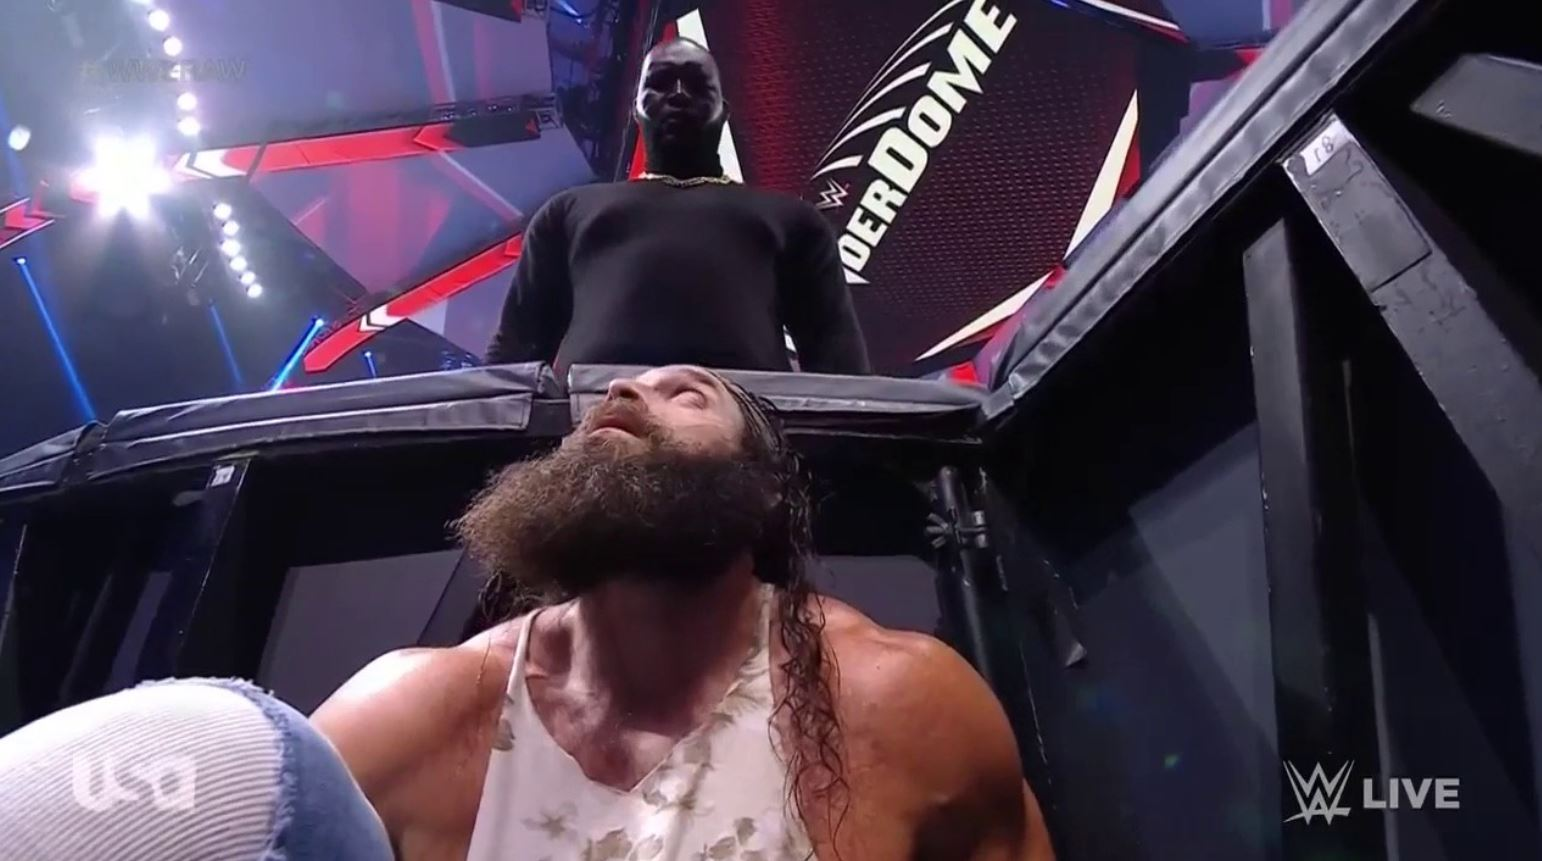 hell in a cell is heating up